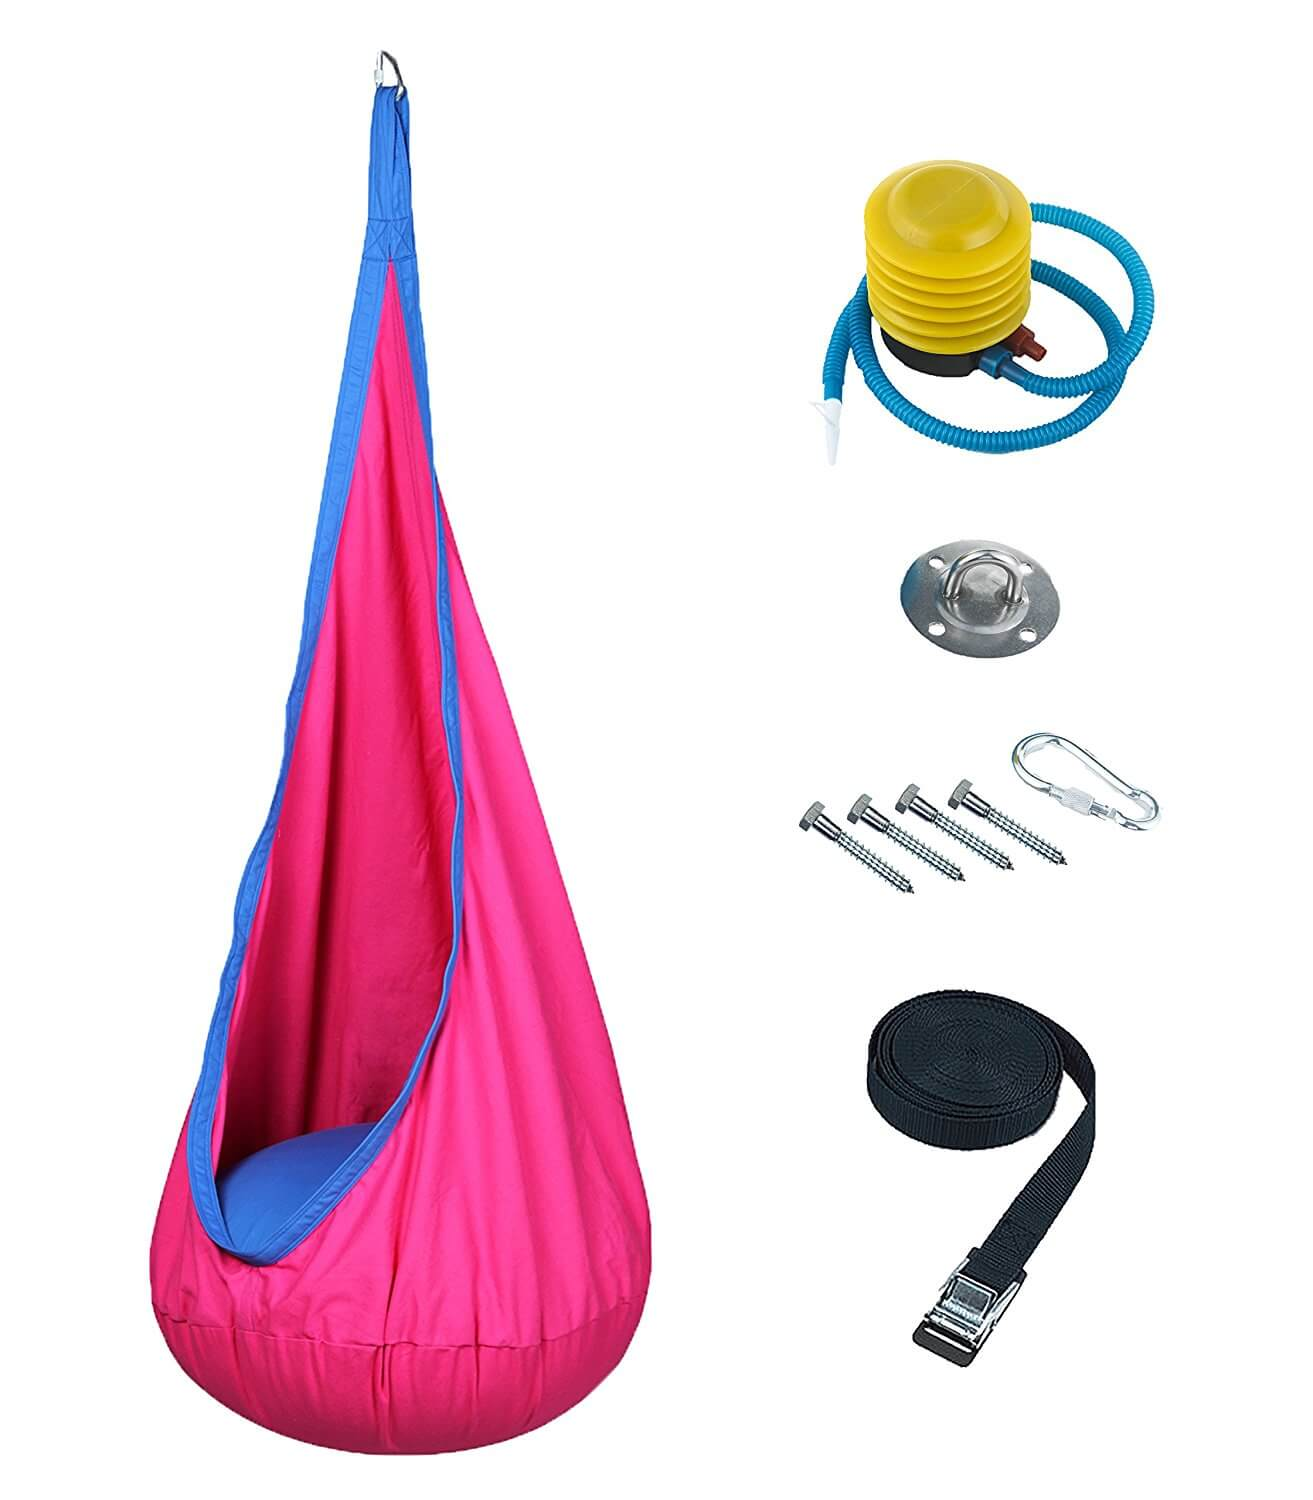 hanging kids chair ikea covers ektorp best swing chairs for 2018 buyer s guide and reviews includes hardware great as a sensory or therapy autism